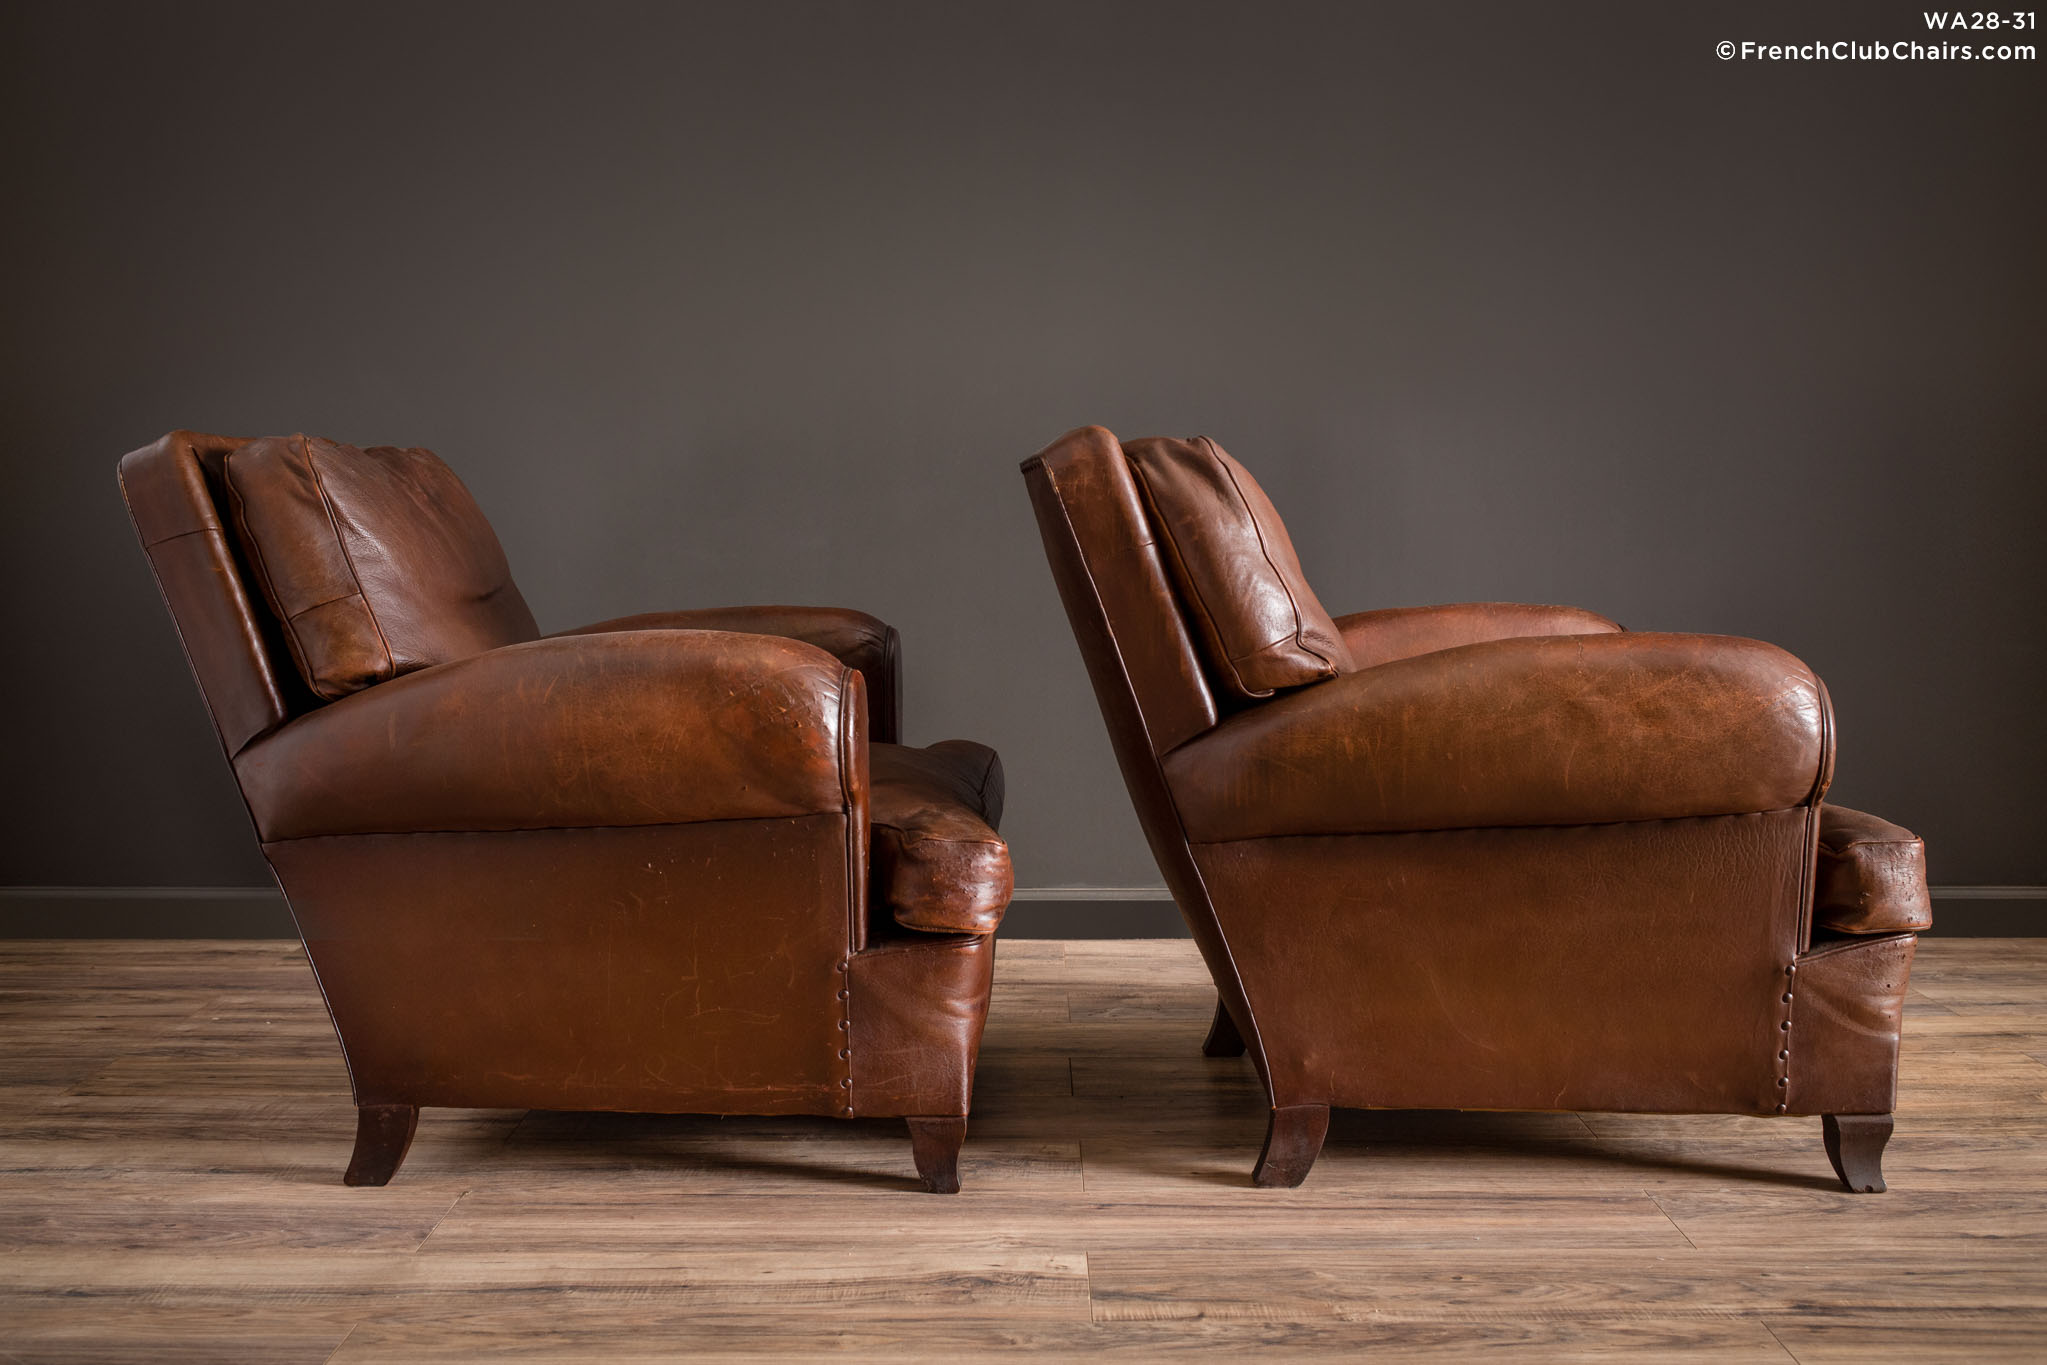 WA_28-31_DeGaulle_Library_Pair_R_3RT1-williams-antiks-leather-french-club-chair-wa_fcccom